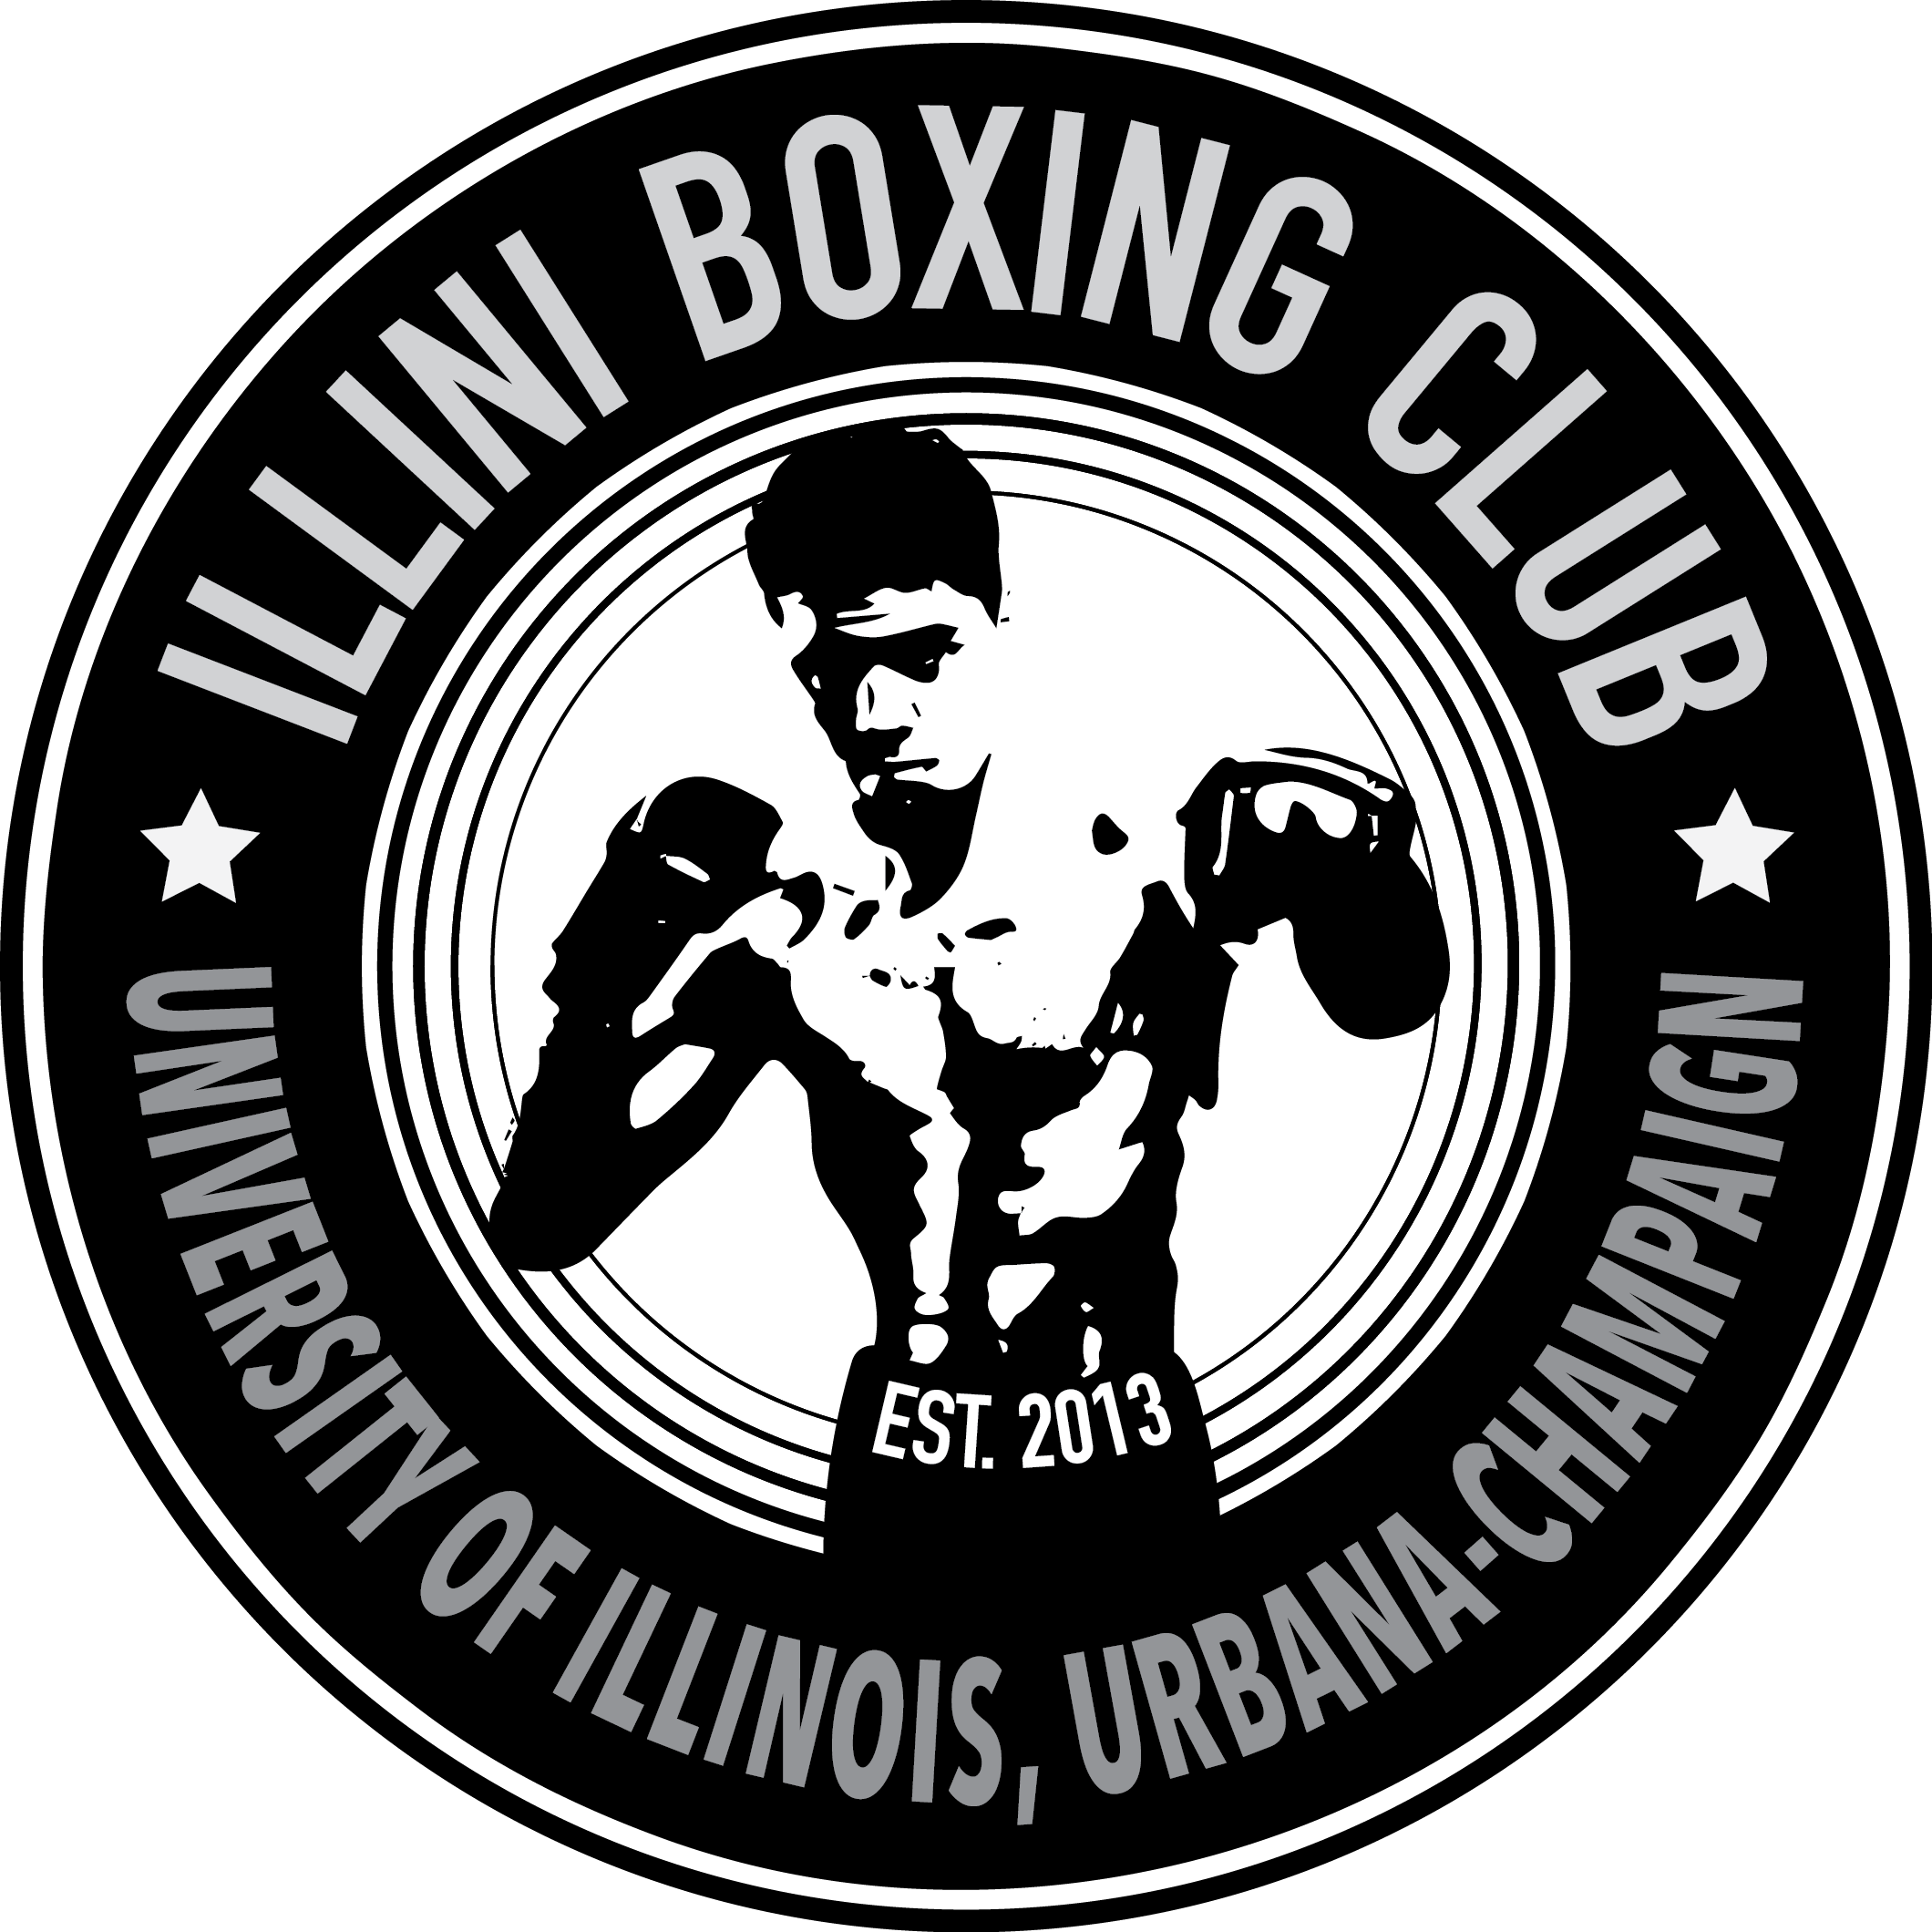 The Illini Boxing Club